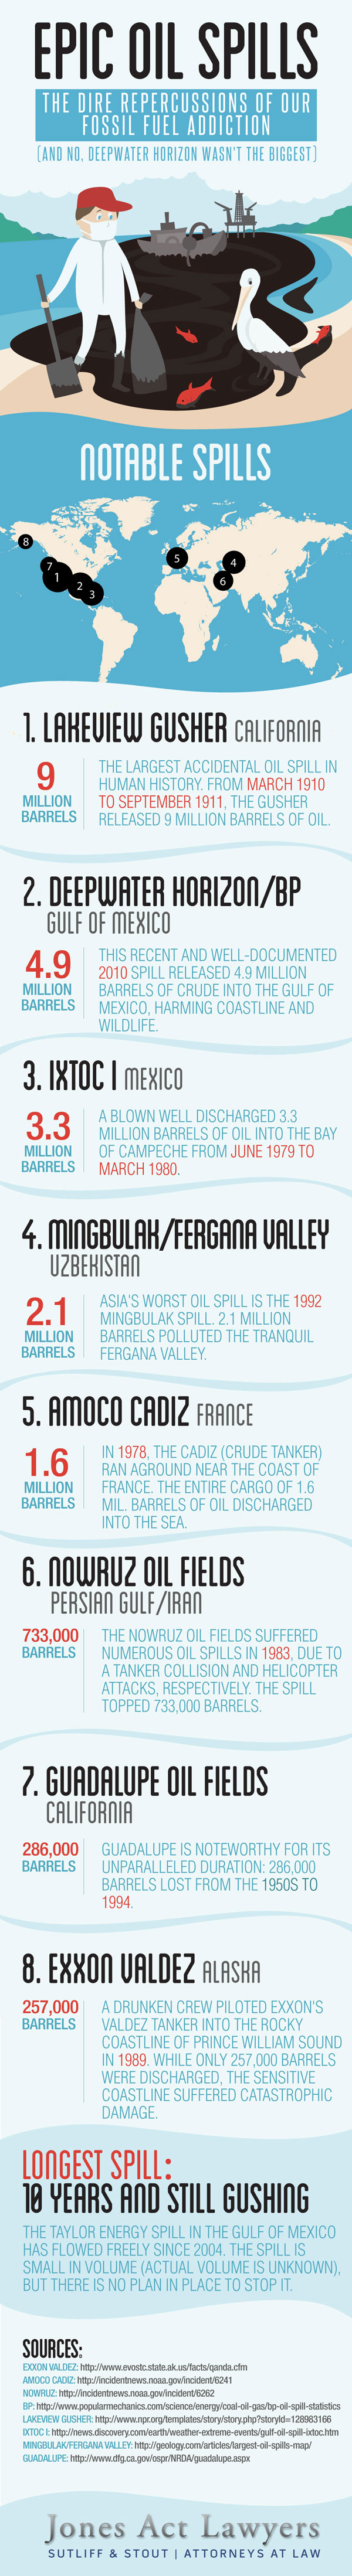 oil-spill-infographic